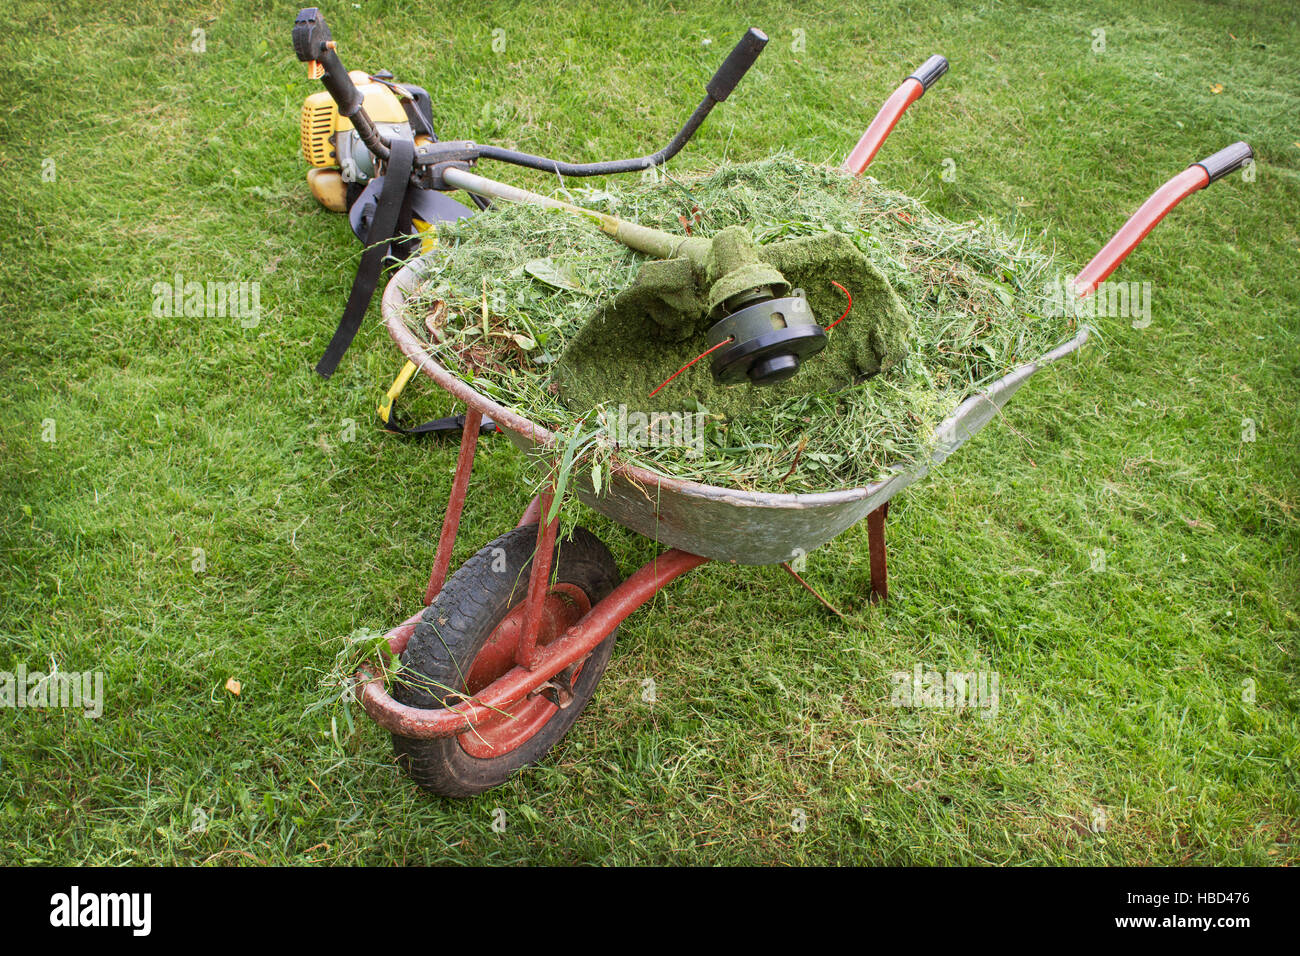 wheelbarrow with grass and petrol trimmer - Stock Image